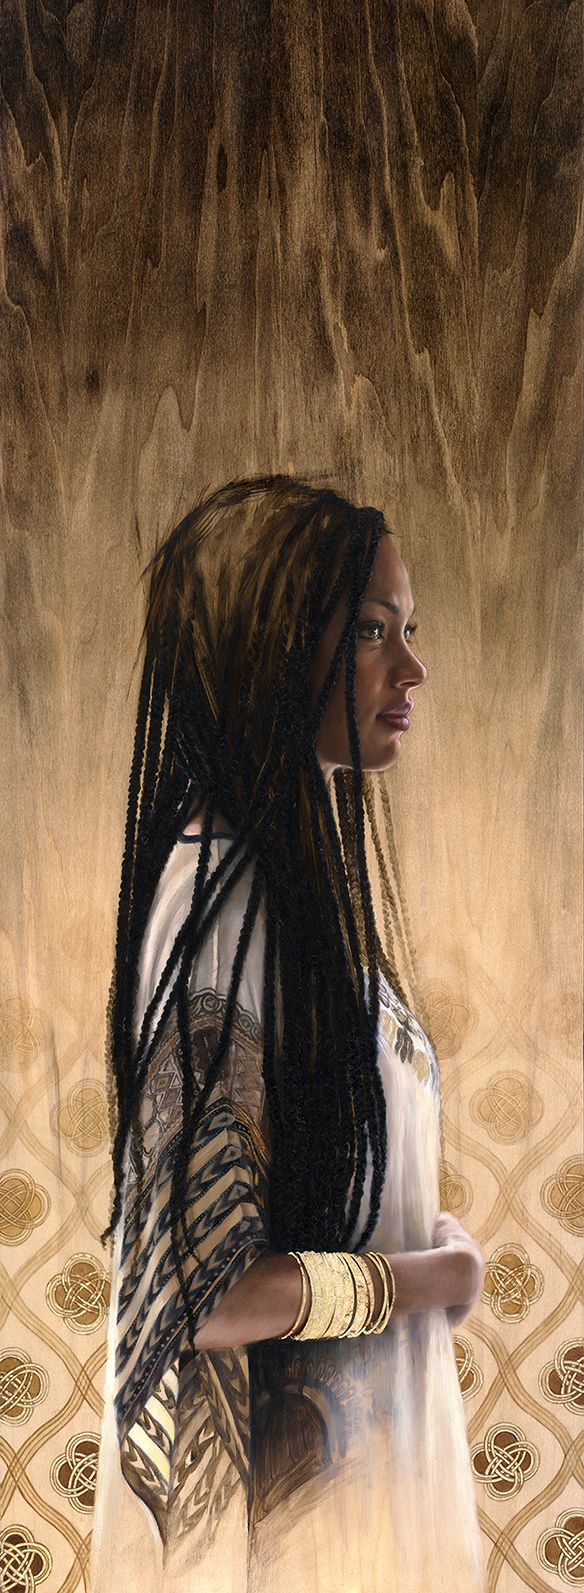 """'The Shadow of your smile' by Sara Golish Oil & gold leaf on wood panel 18"""" x 50"""" www.saragolish.com #portrait #profile #painting"""